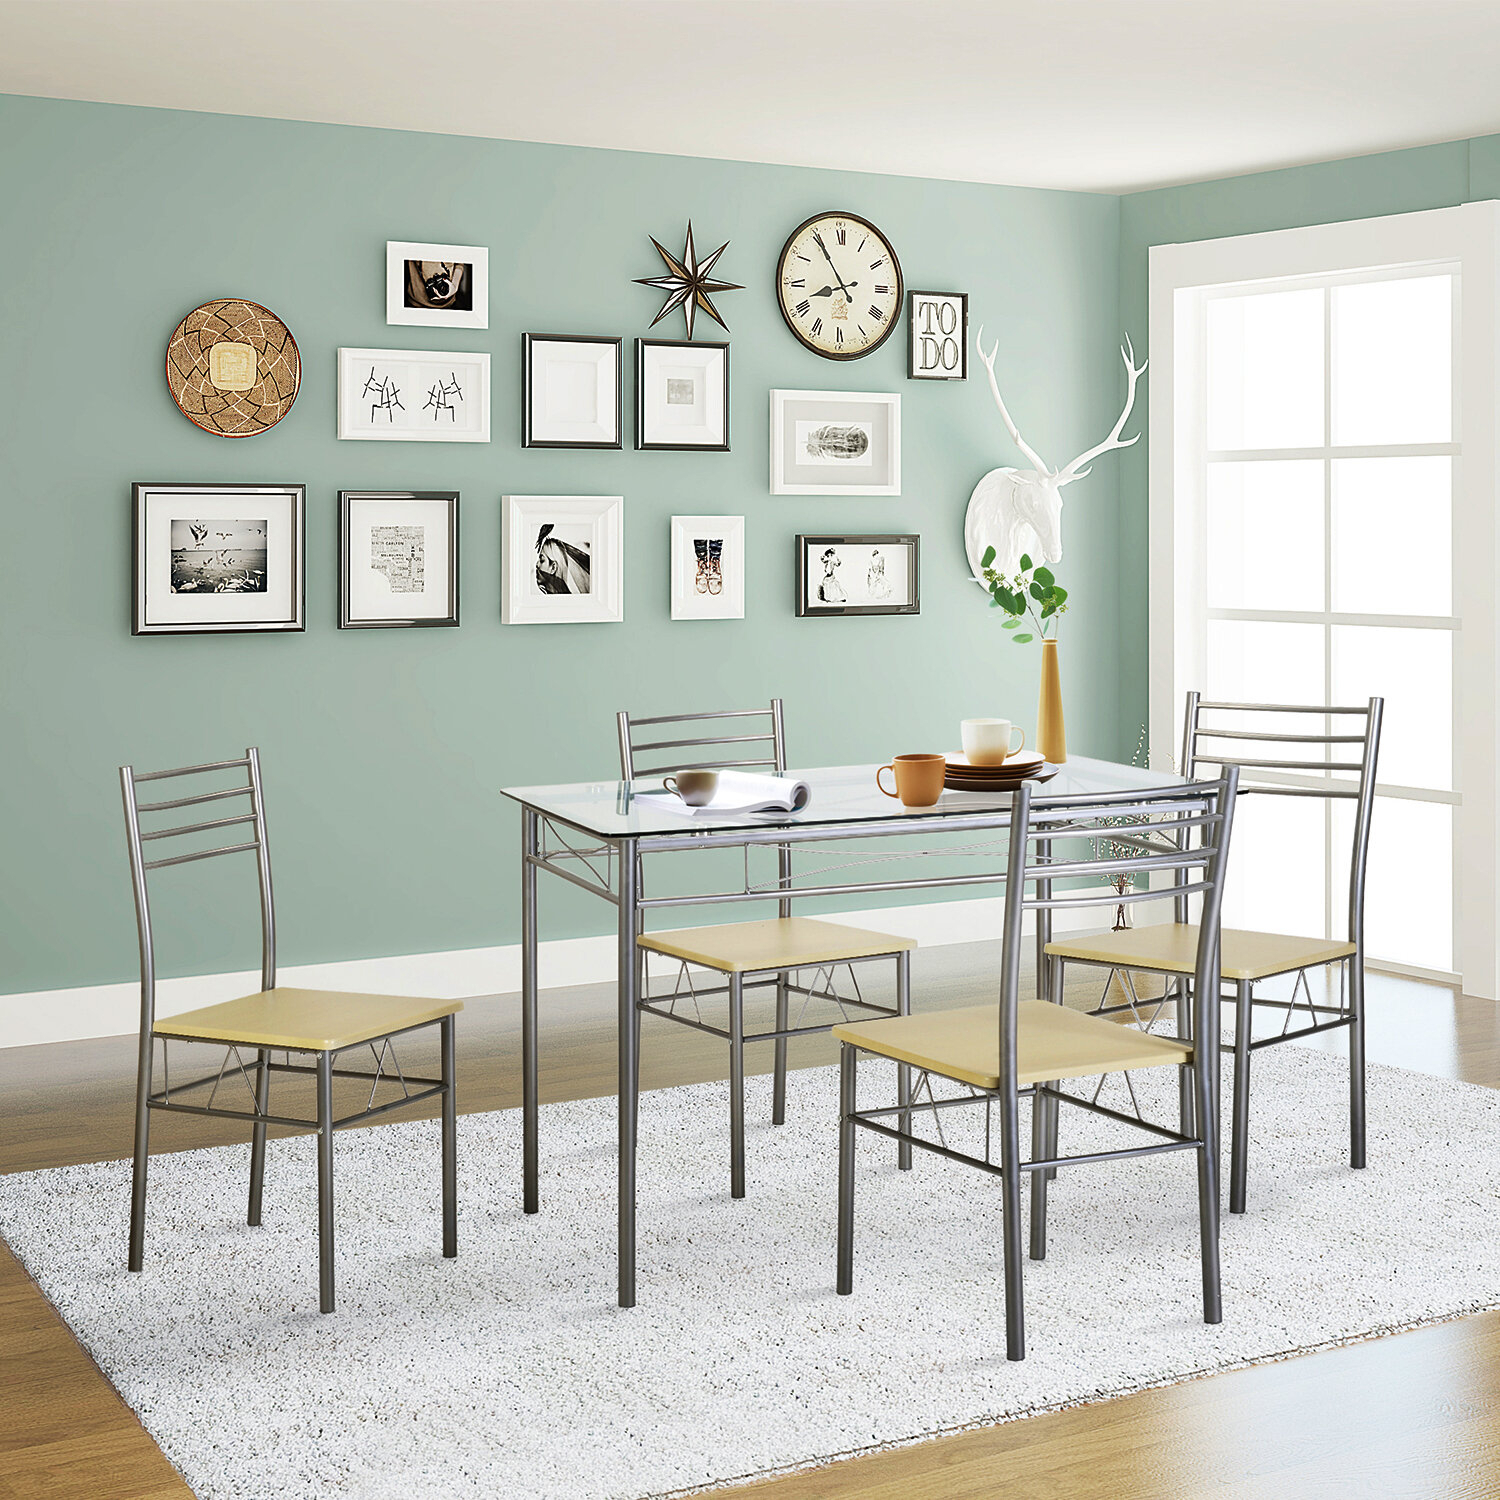 Ebay With Regard To 5 Piece Breakfast Nook Dining Sets (#3 of 20)